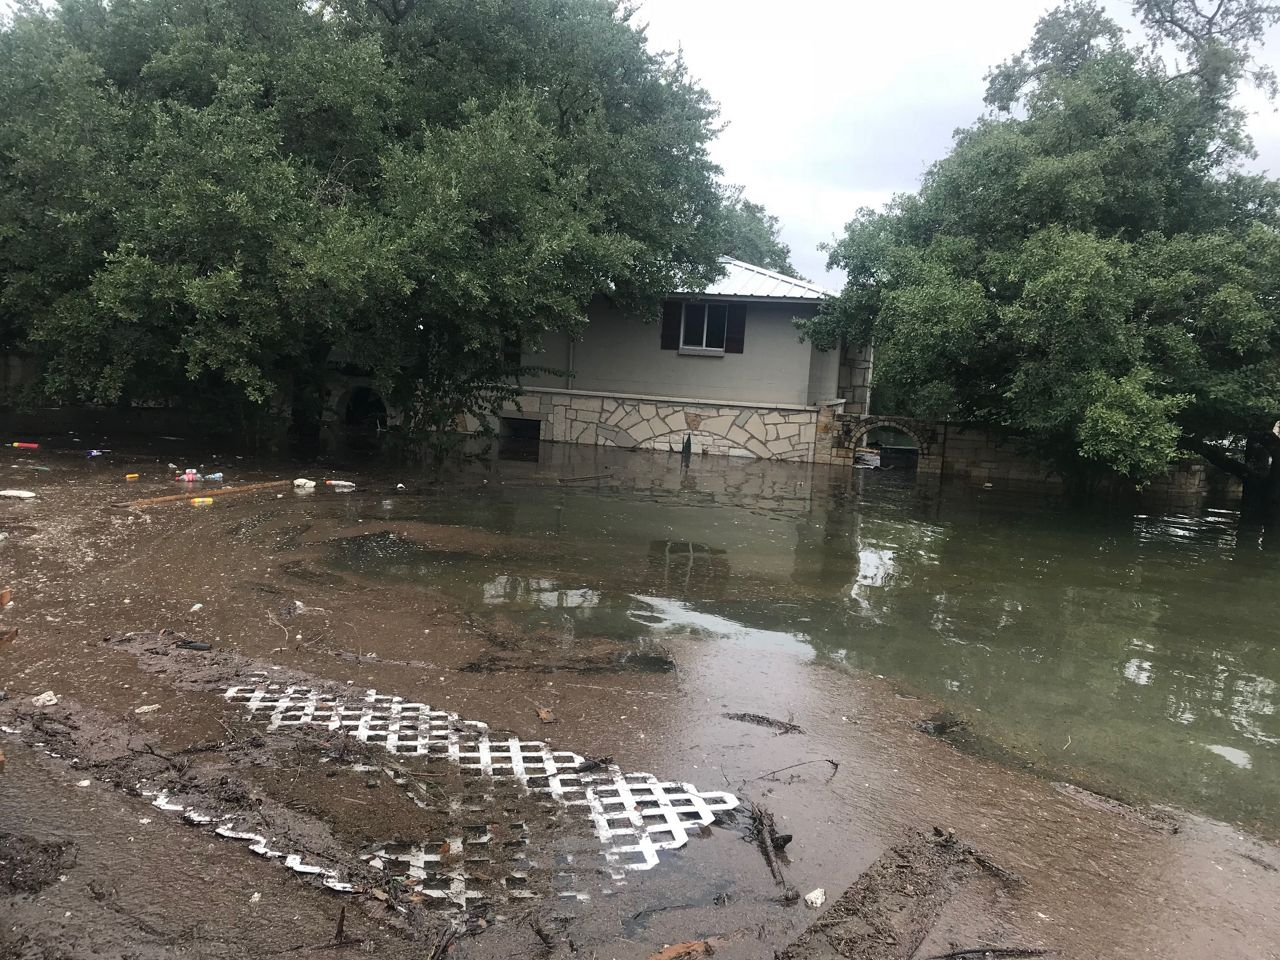 Homes flooding in Lakeway at Hurst Hollow and Hurst Creek Road as Lake Travis continues to rise.